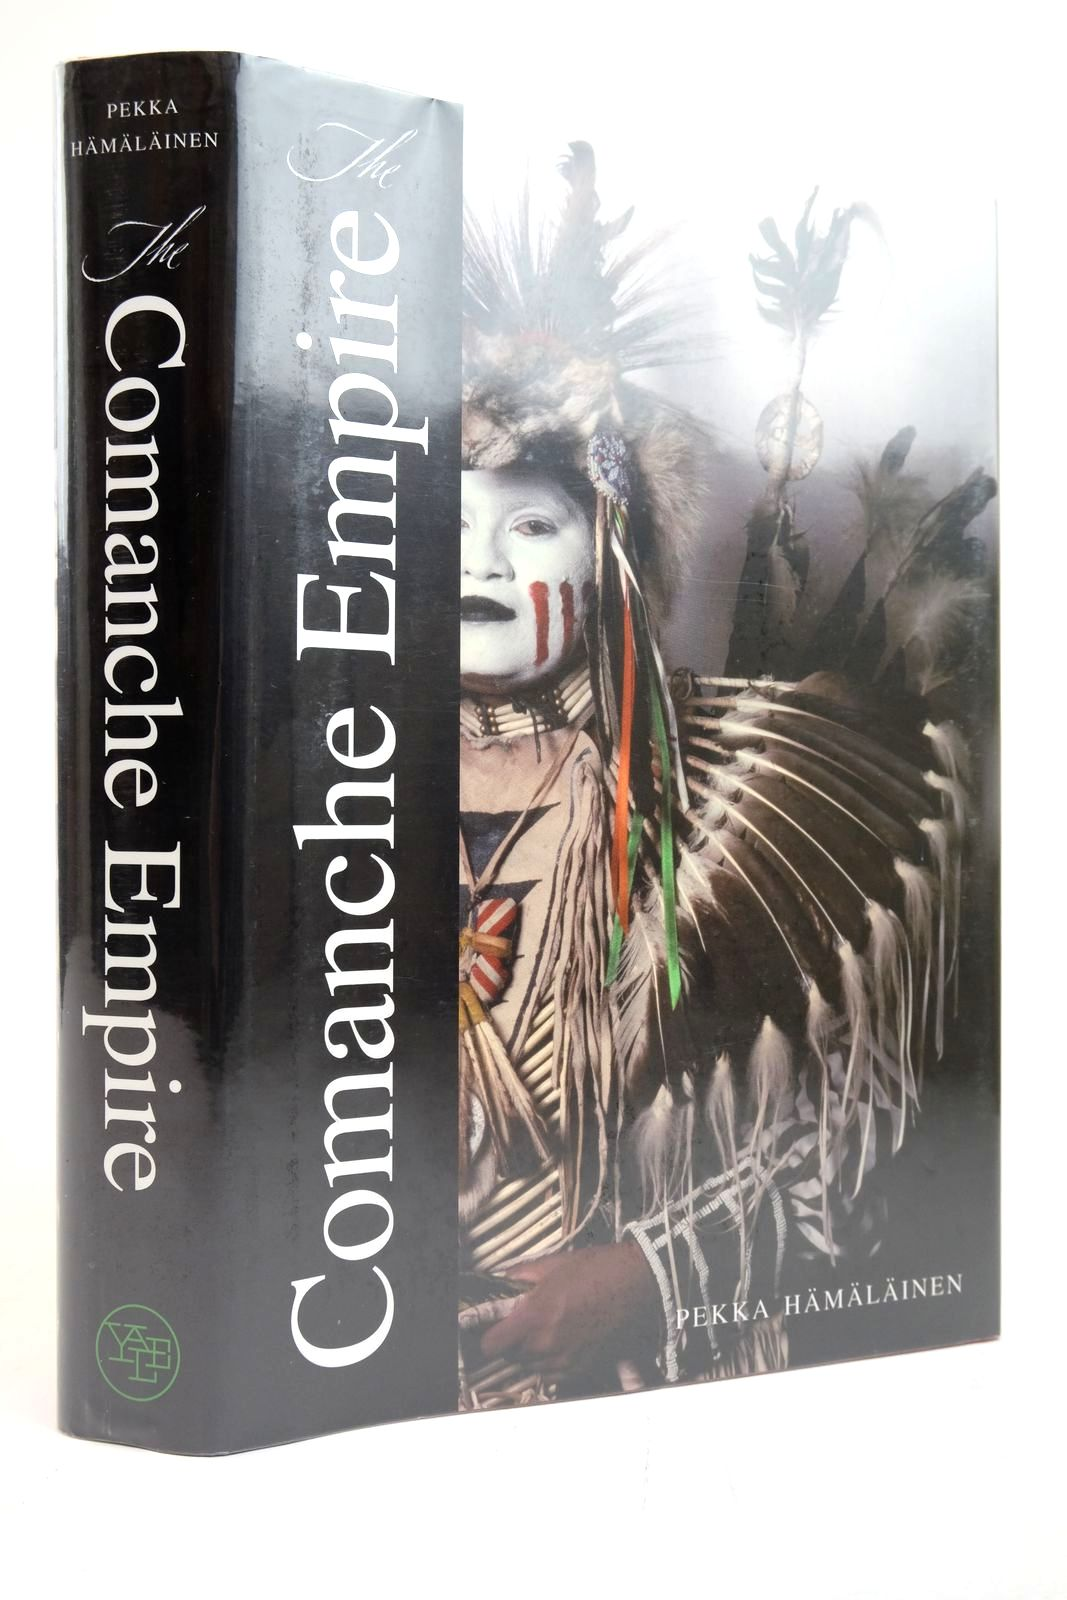 Photo of THE COMANCHE EMPIRE written by Hamalainen, Pekka published by Yale University Press (STOCK CODE: 2135294)  for sale by Stella & Rose's Books